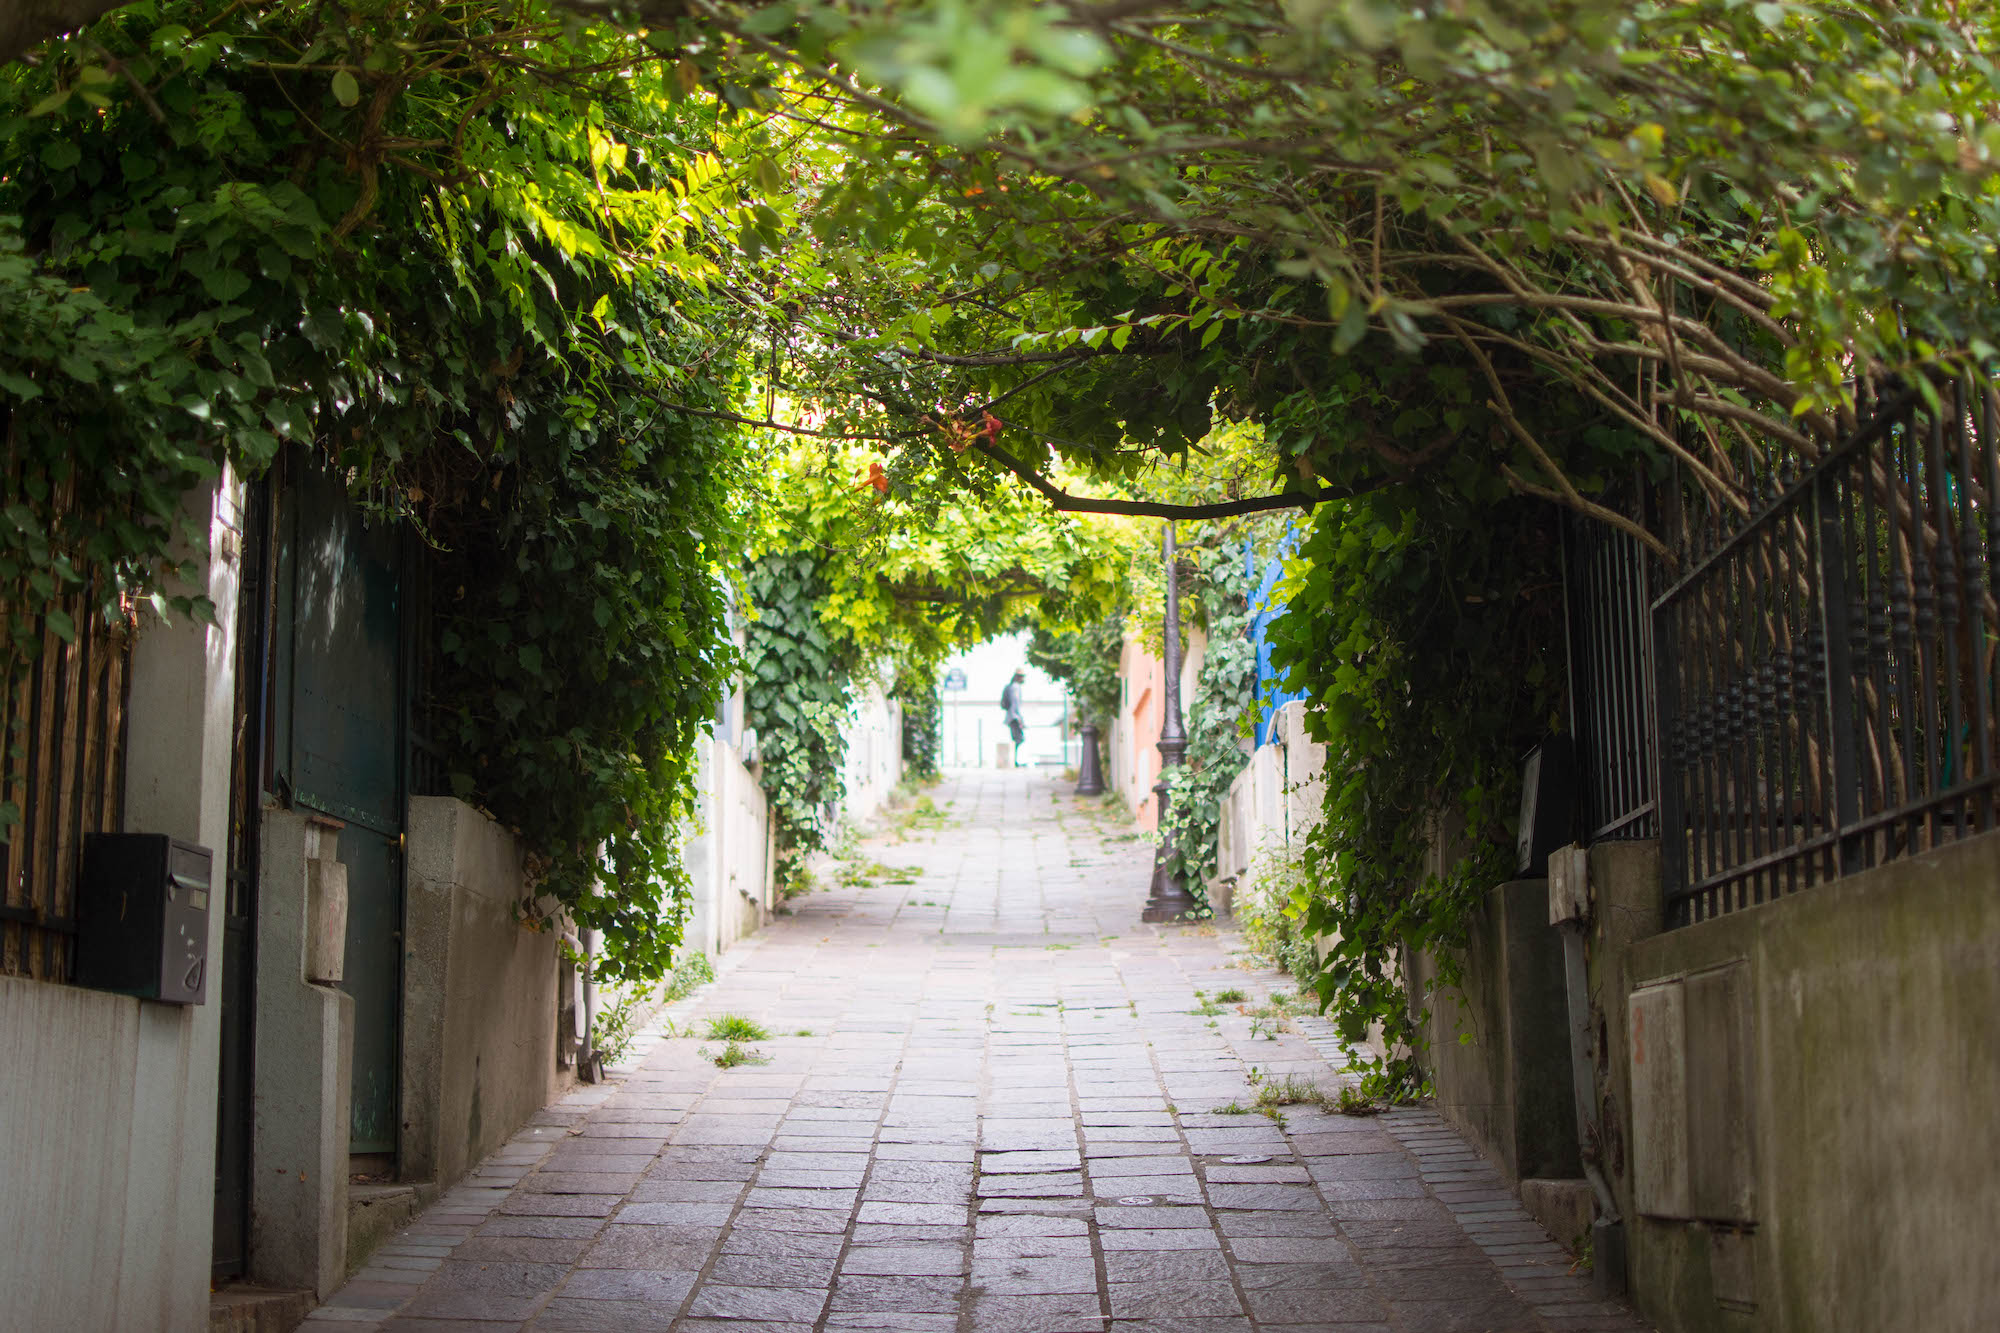 Branches, heavy with summer greens, droop gently into an empty cobbled pathway in the Quartier de la Mouzaïa, a village-like neighborhood in Paris' 19th arrondissement.